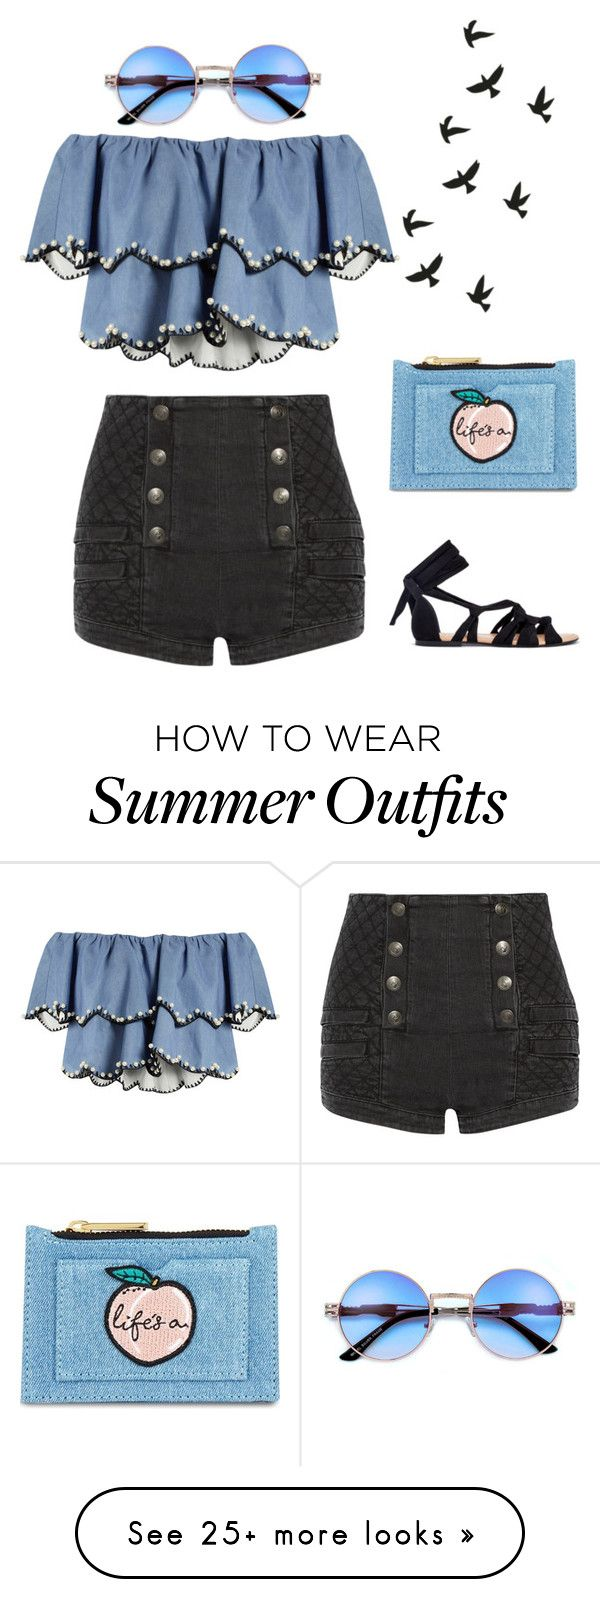 """""""Minimal Summer Outfit II"""" by cristina-barberis on Polyvore featuring HUISHAN ZHANG, Pierre Balmain and Skinnydip"""